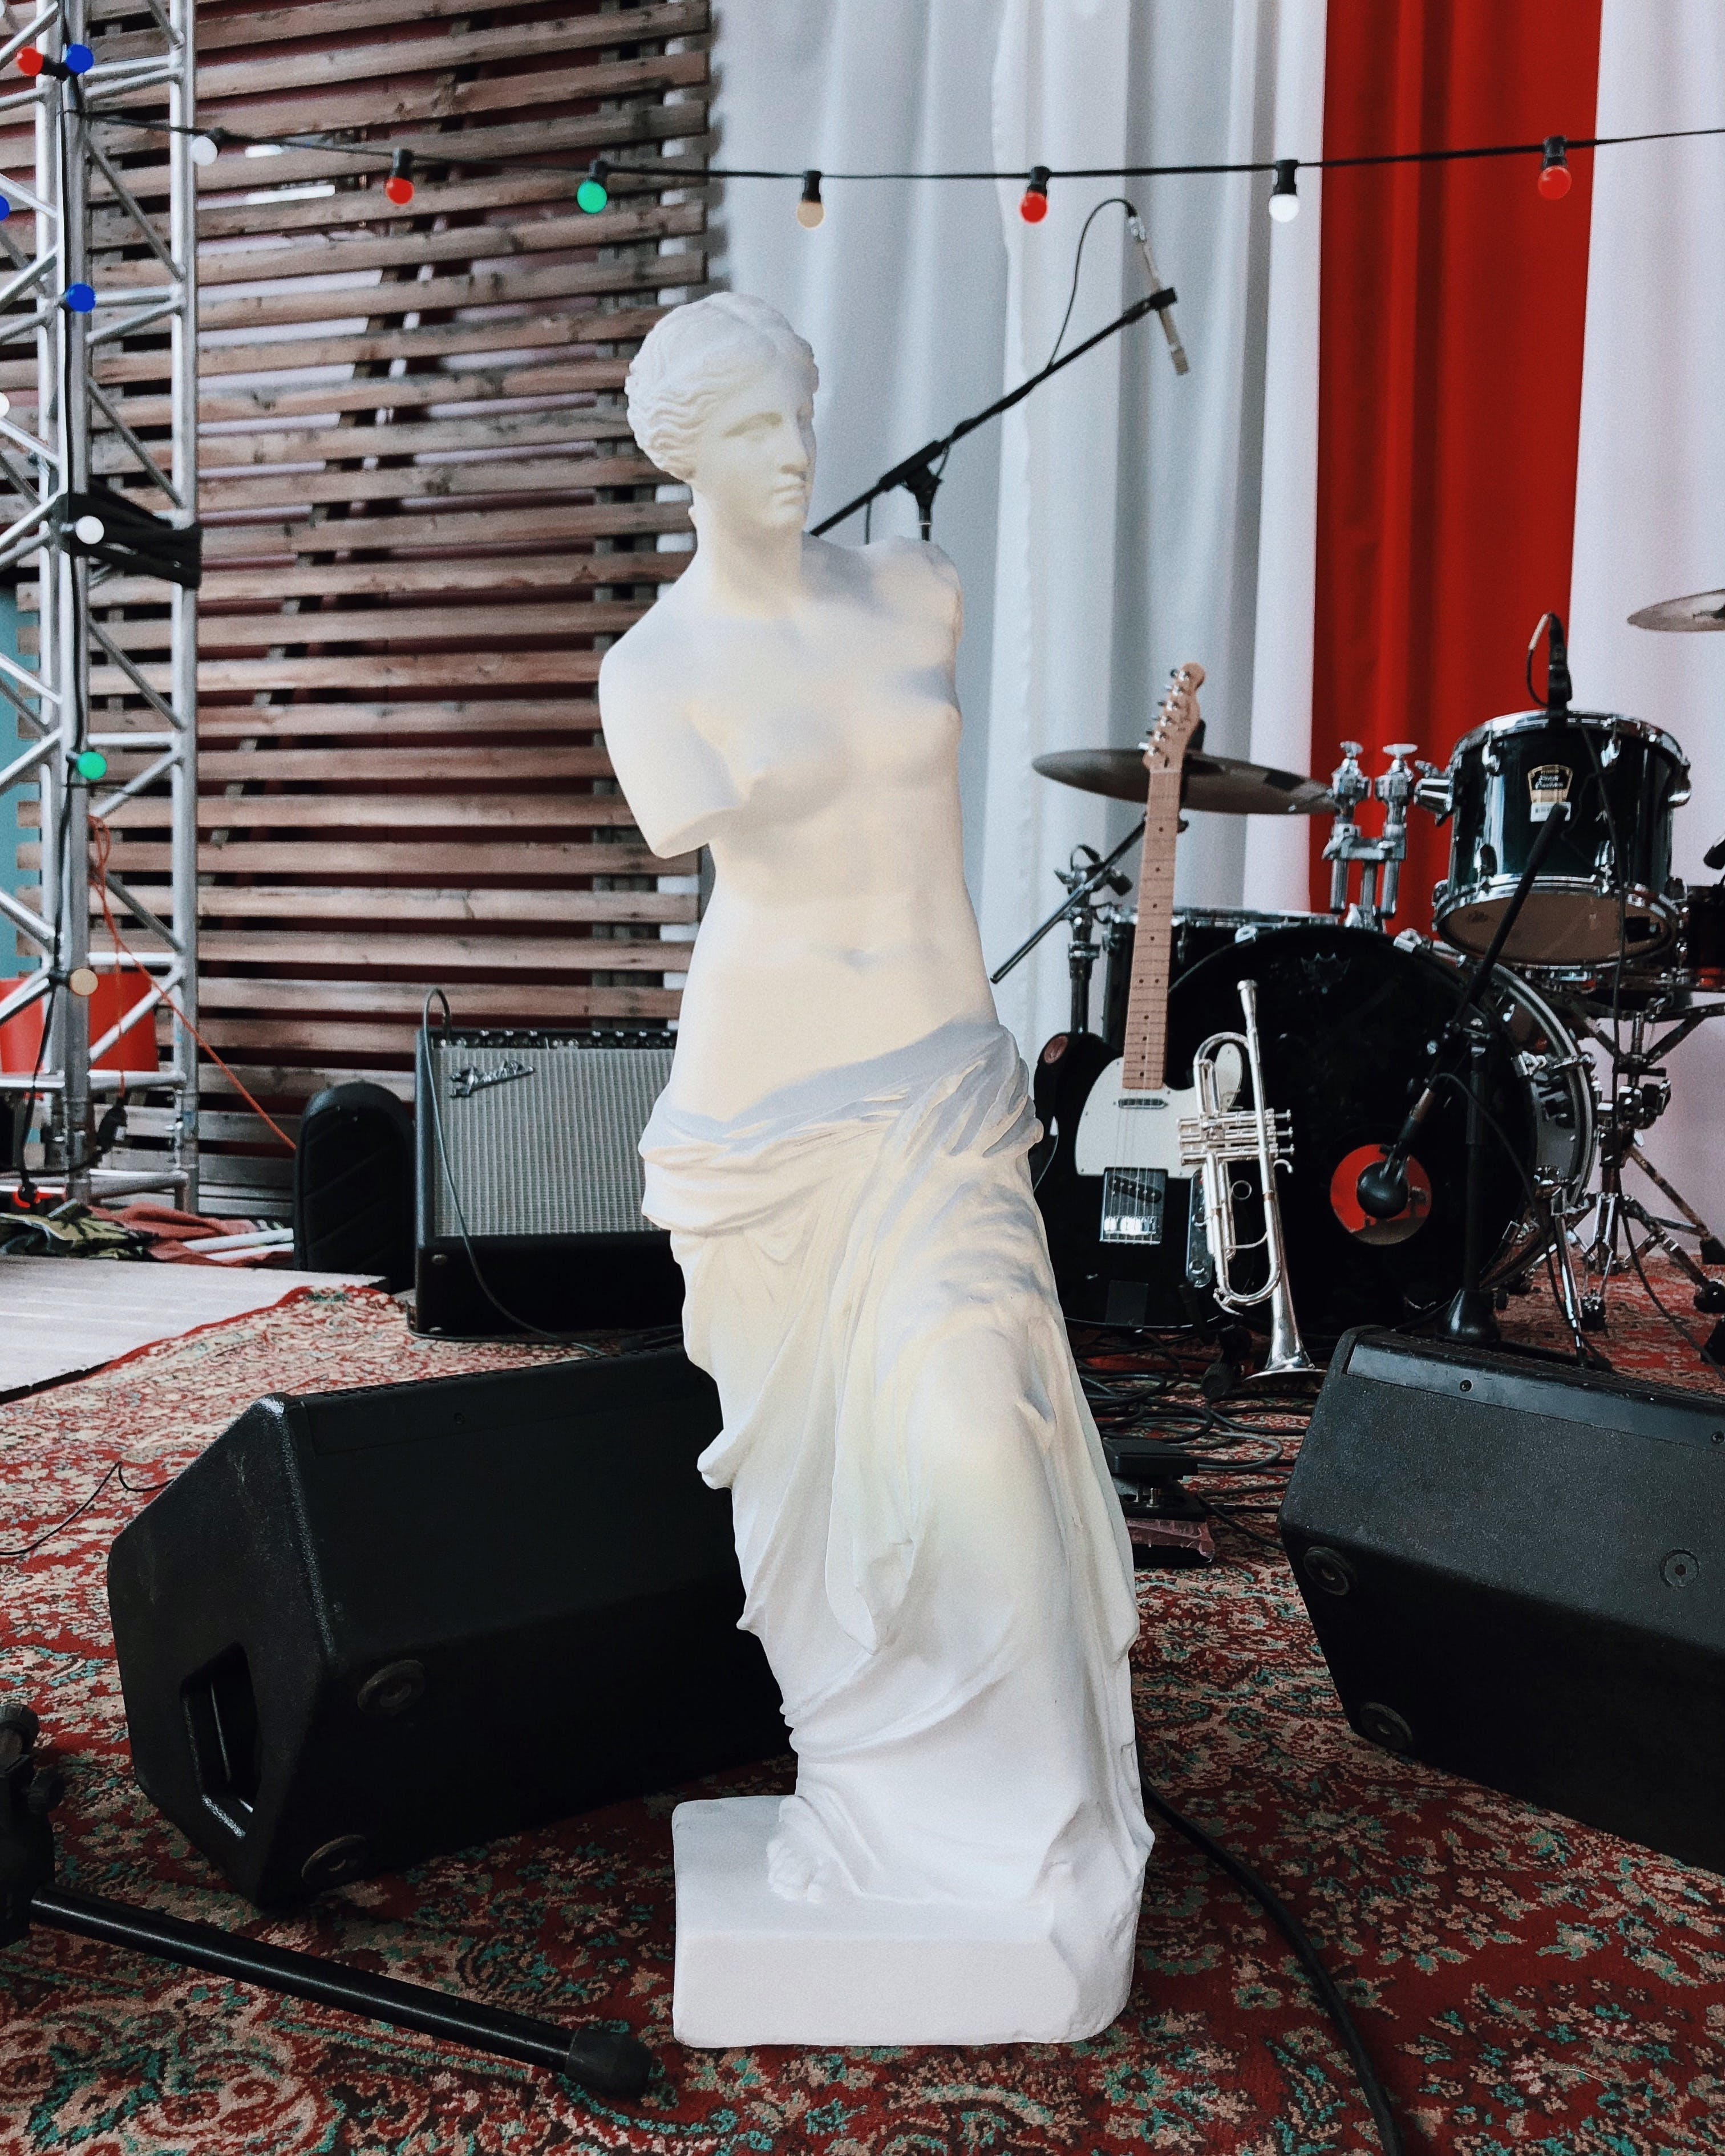 Free stock photo of music, lighting, statue, stage